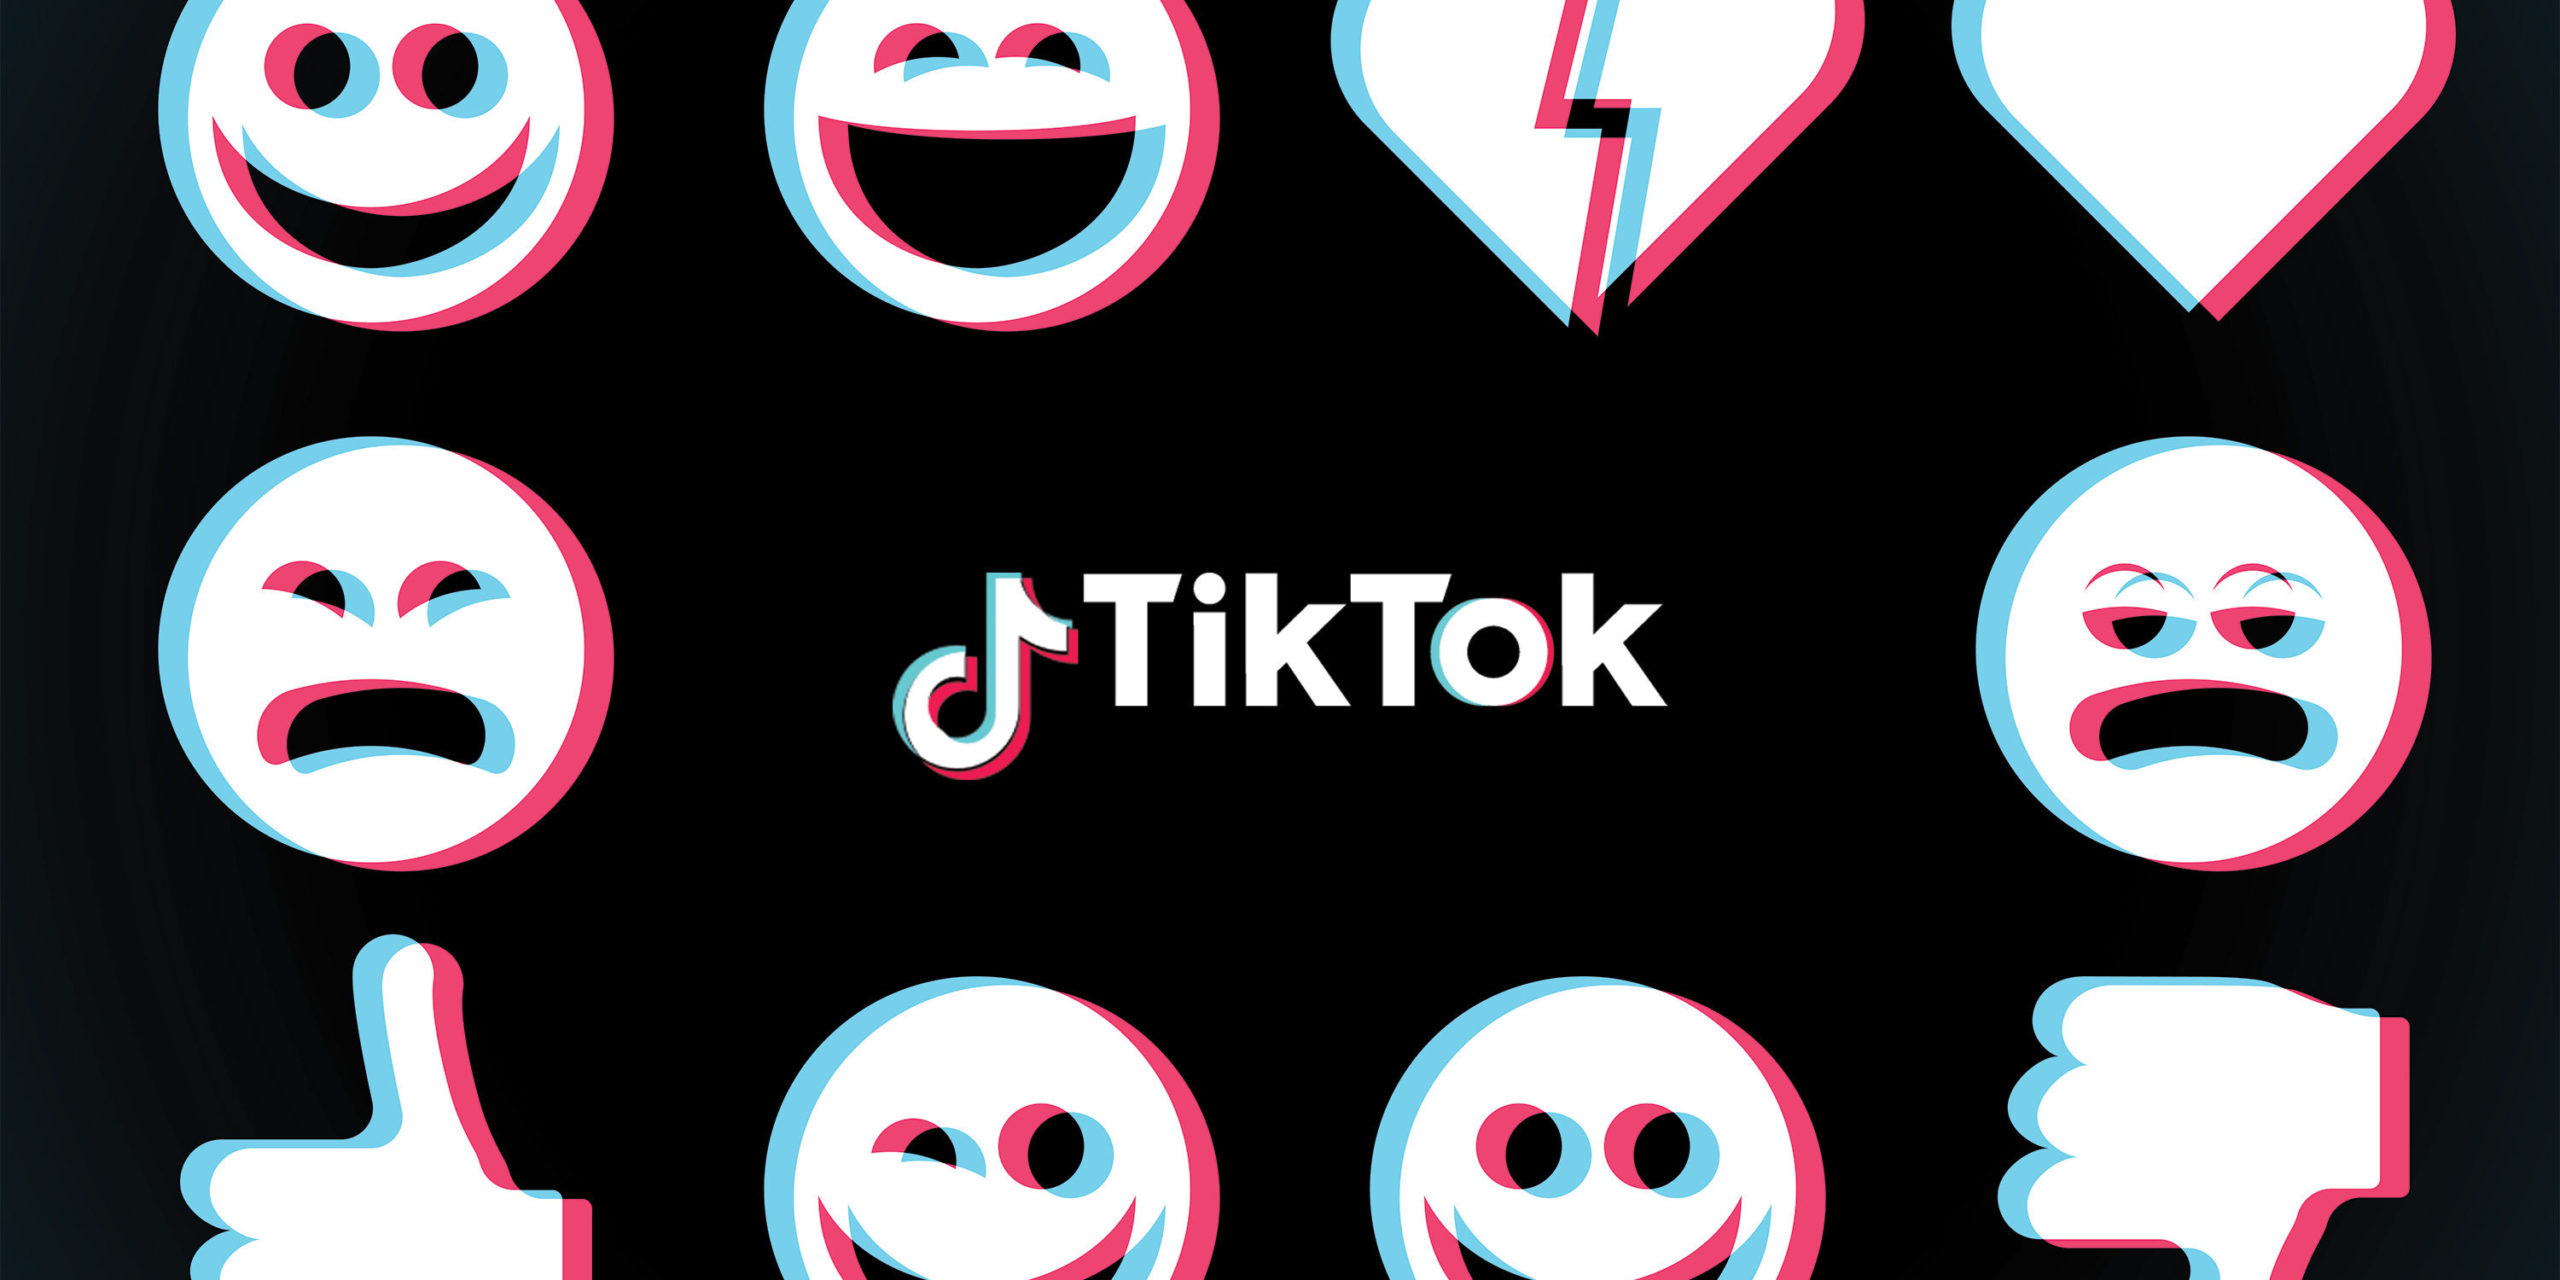 TikTok seeks more user details related to their biometric information 1